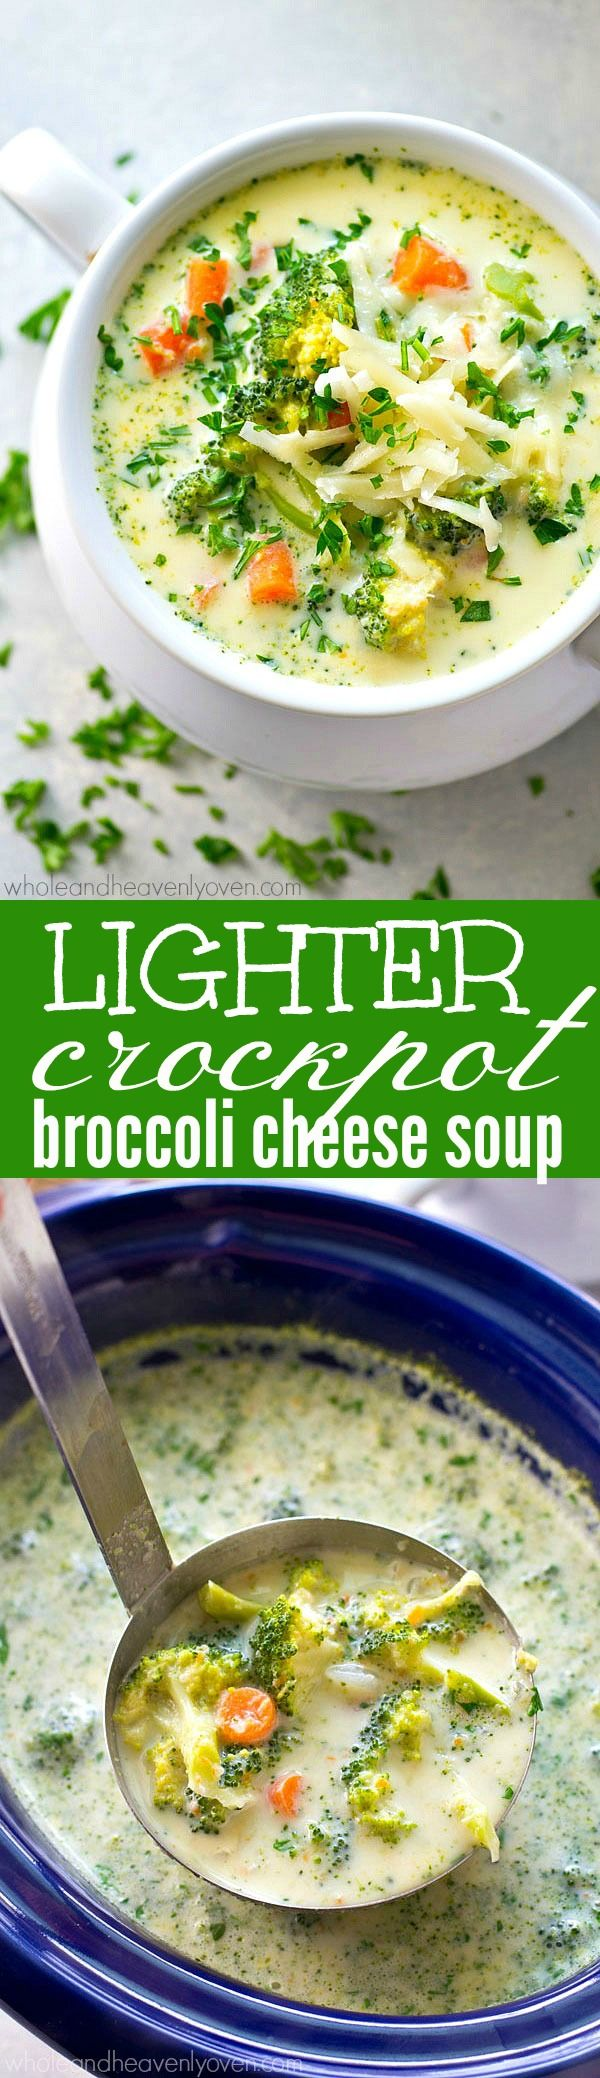 Love the broccoli cheese soup from Panera? This no-fuss crockpot version is unbelievably easy to throw together and lighter on the calories too! You'll be having bowl after bowl.